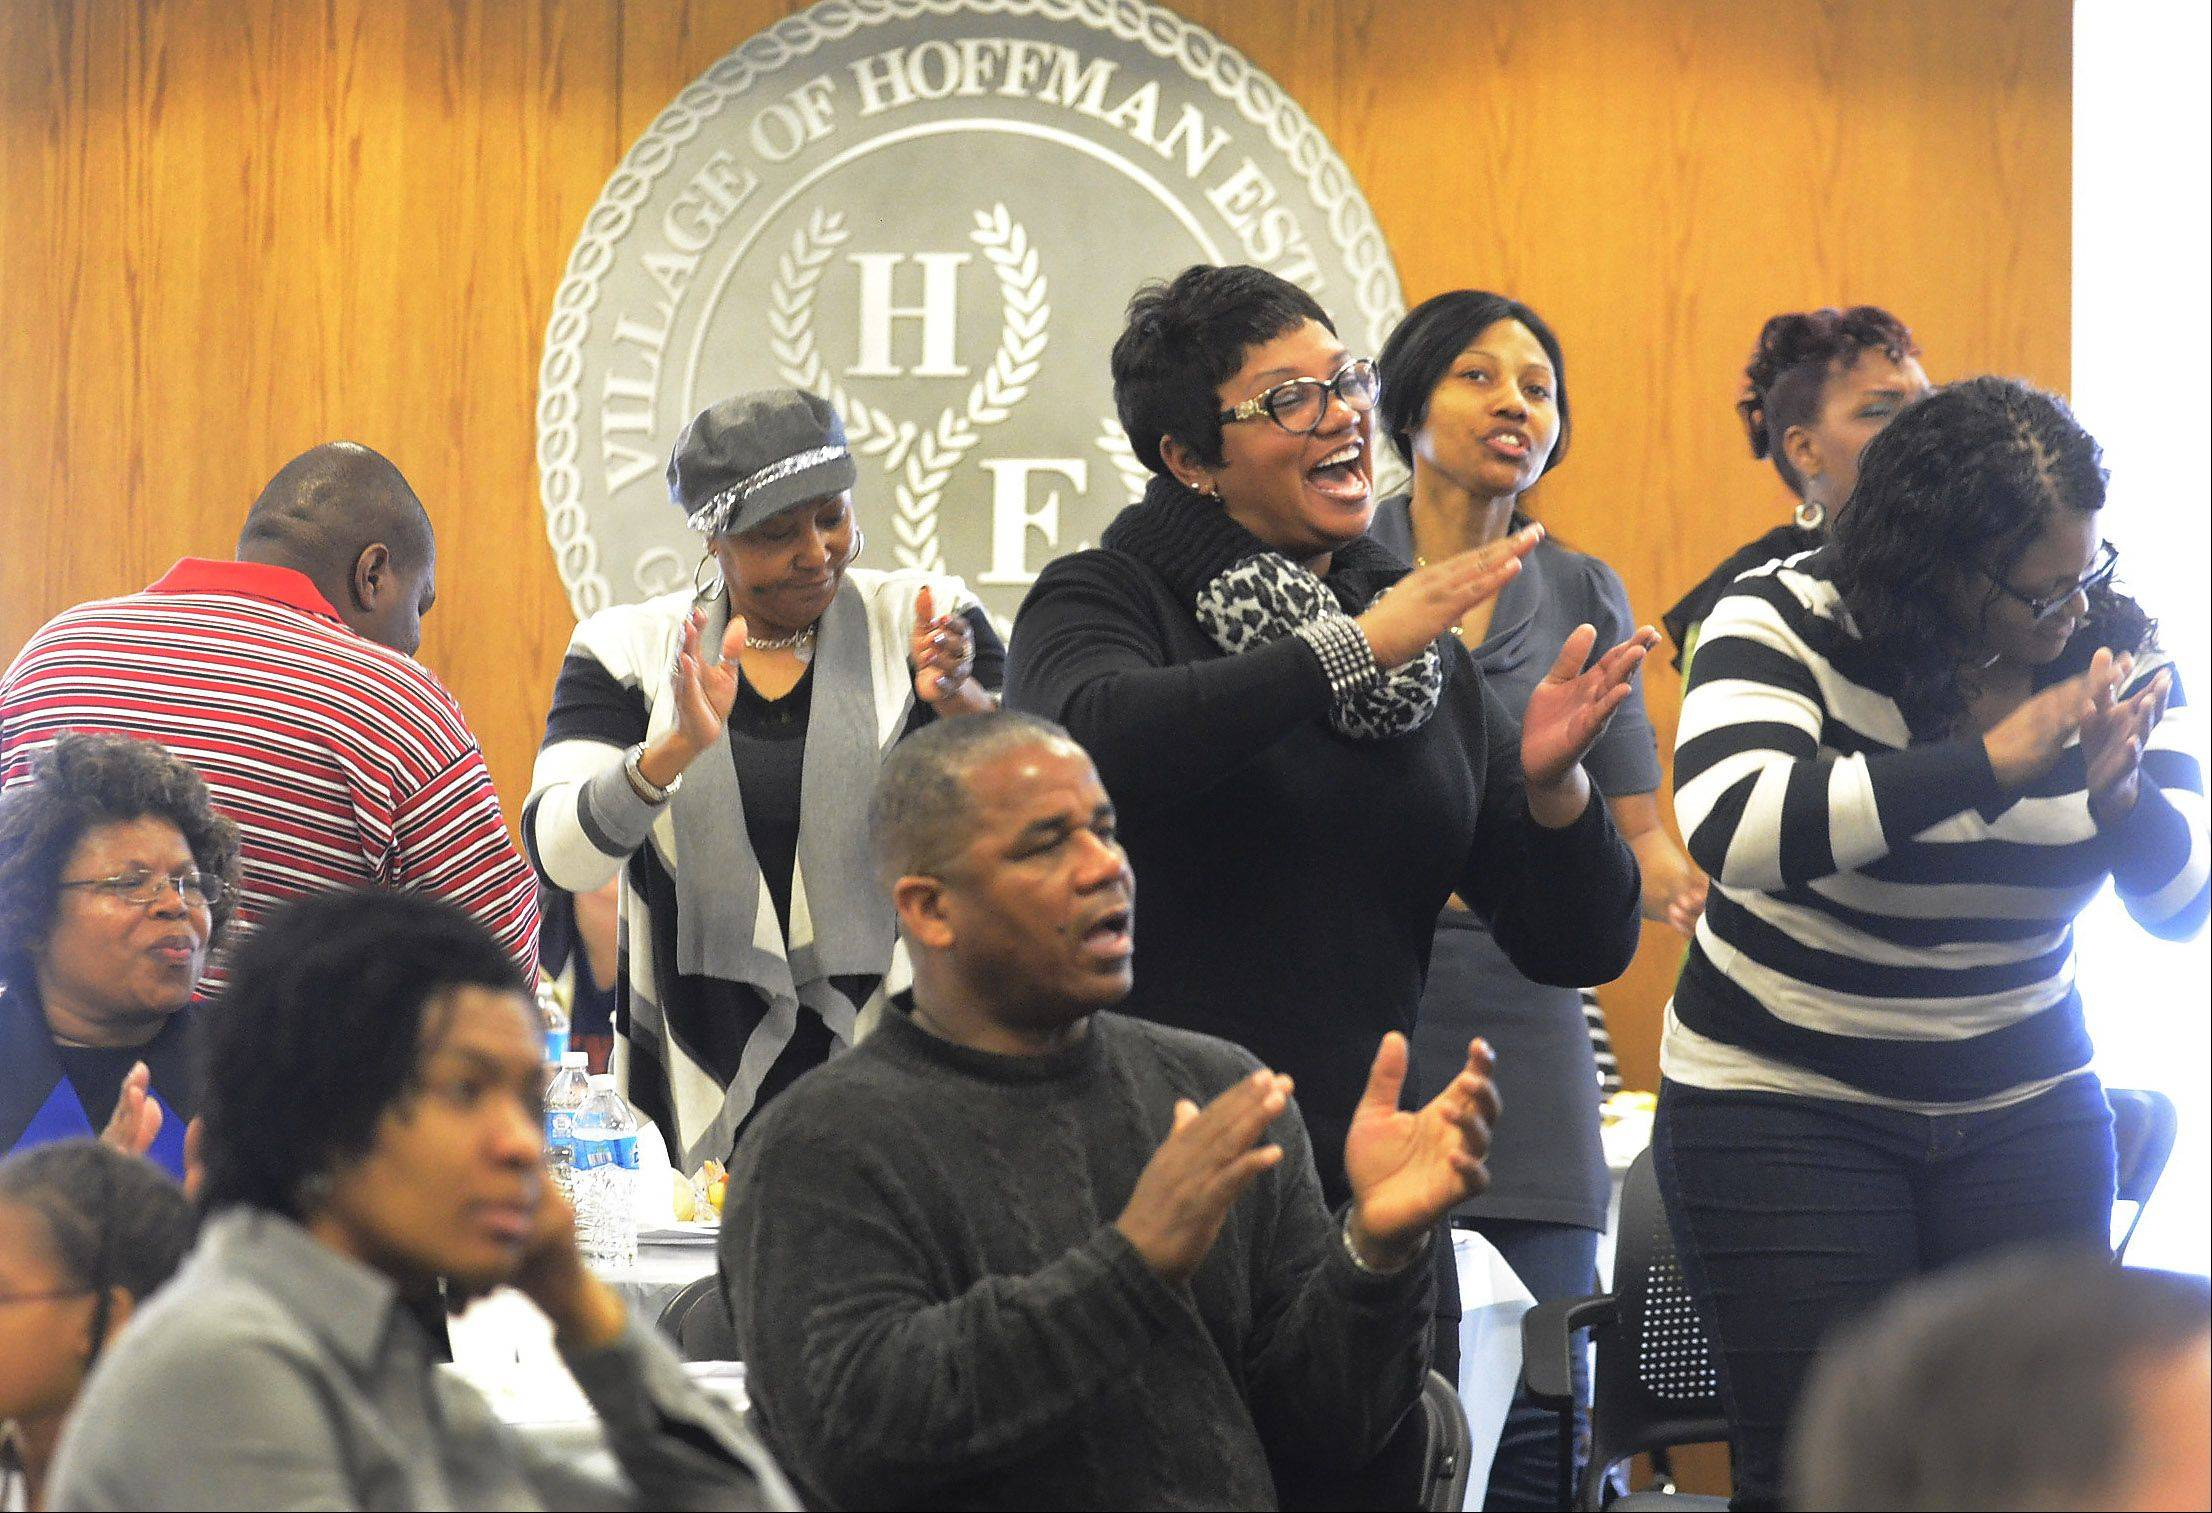 The audience dances to the Sears Holdings Associate Gospel Choir, during the Hoffman Estates Cultural Awareness Commission's 12th annual Martin Luther King Jr. Community Breakfast.